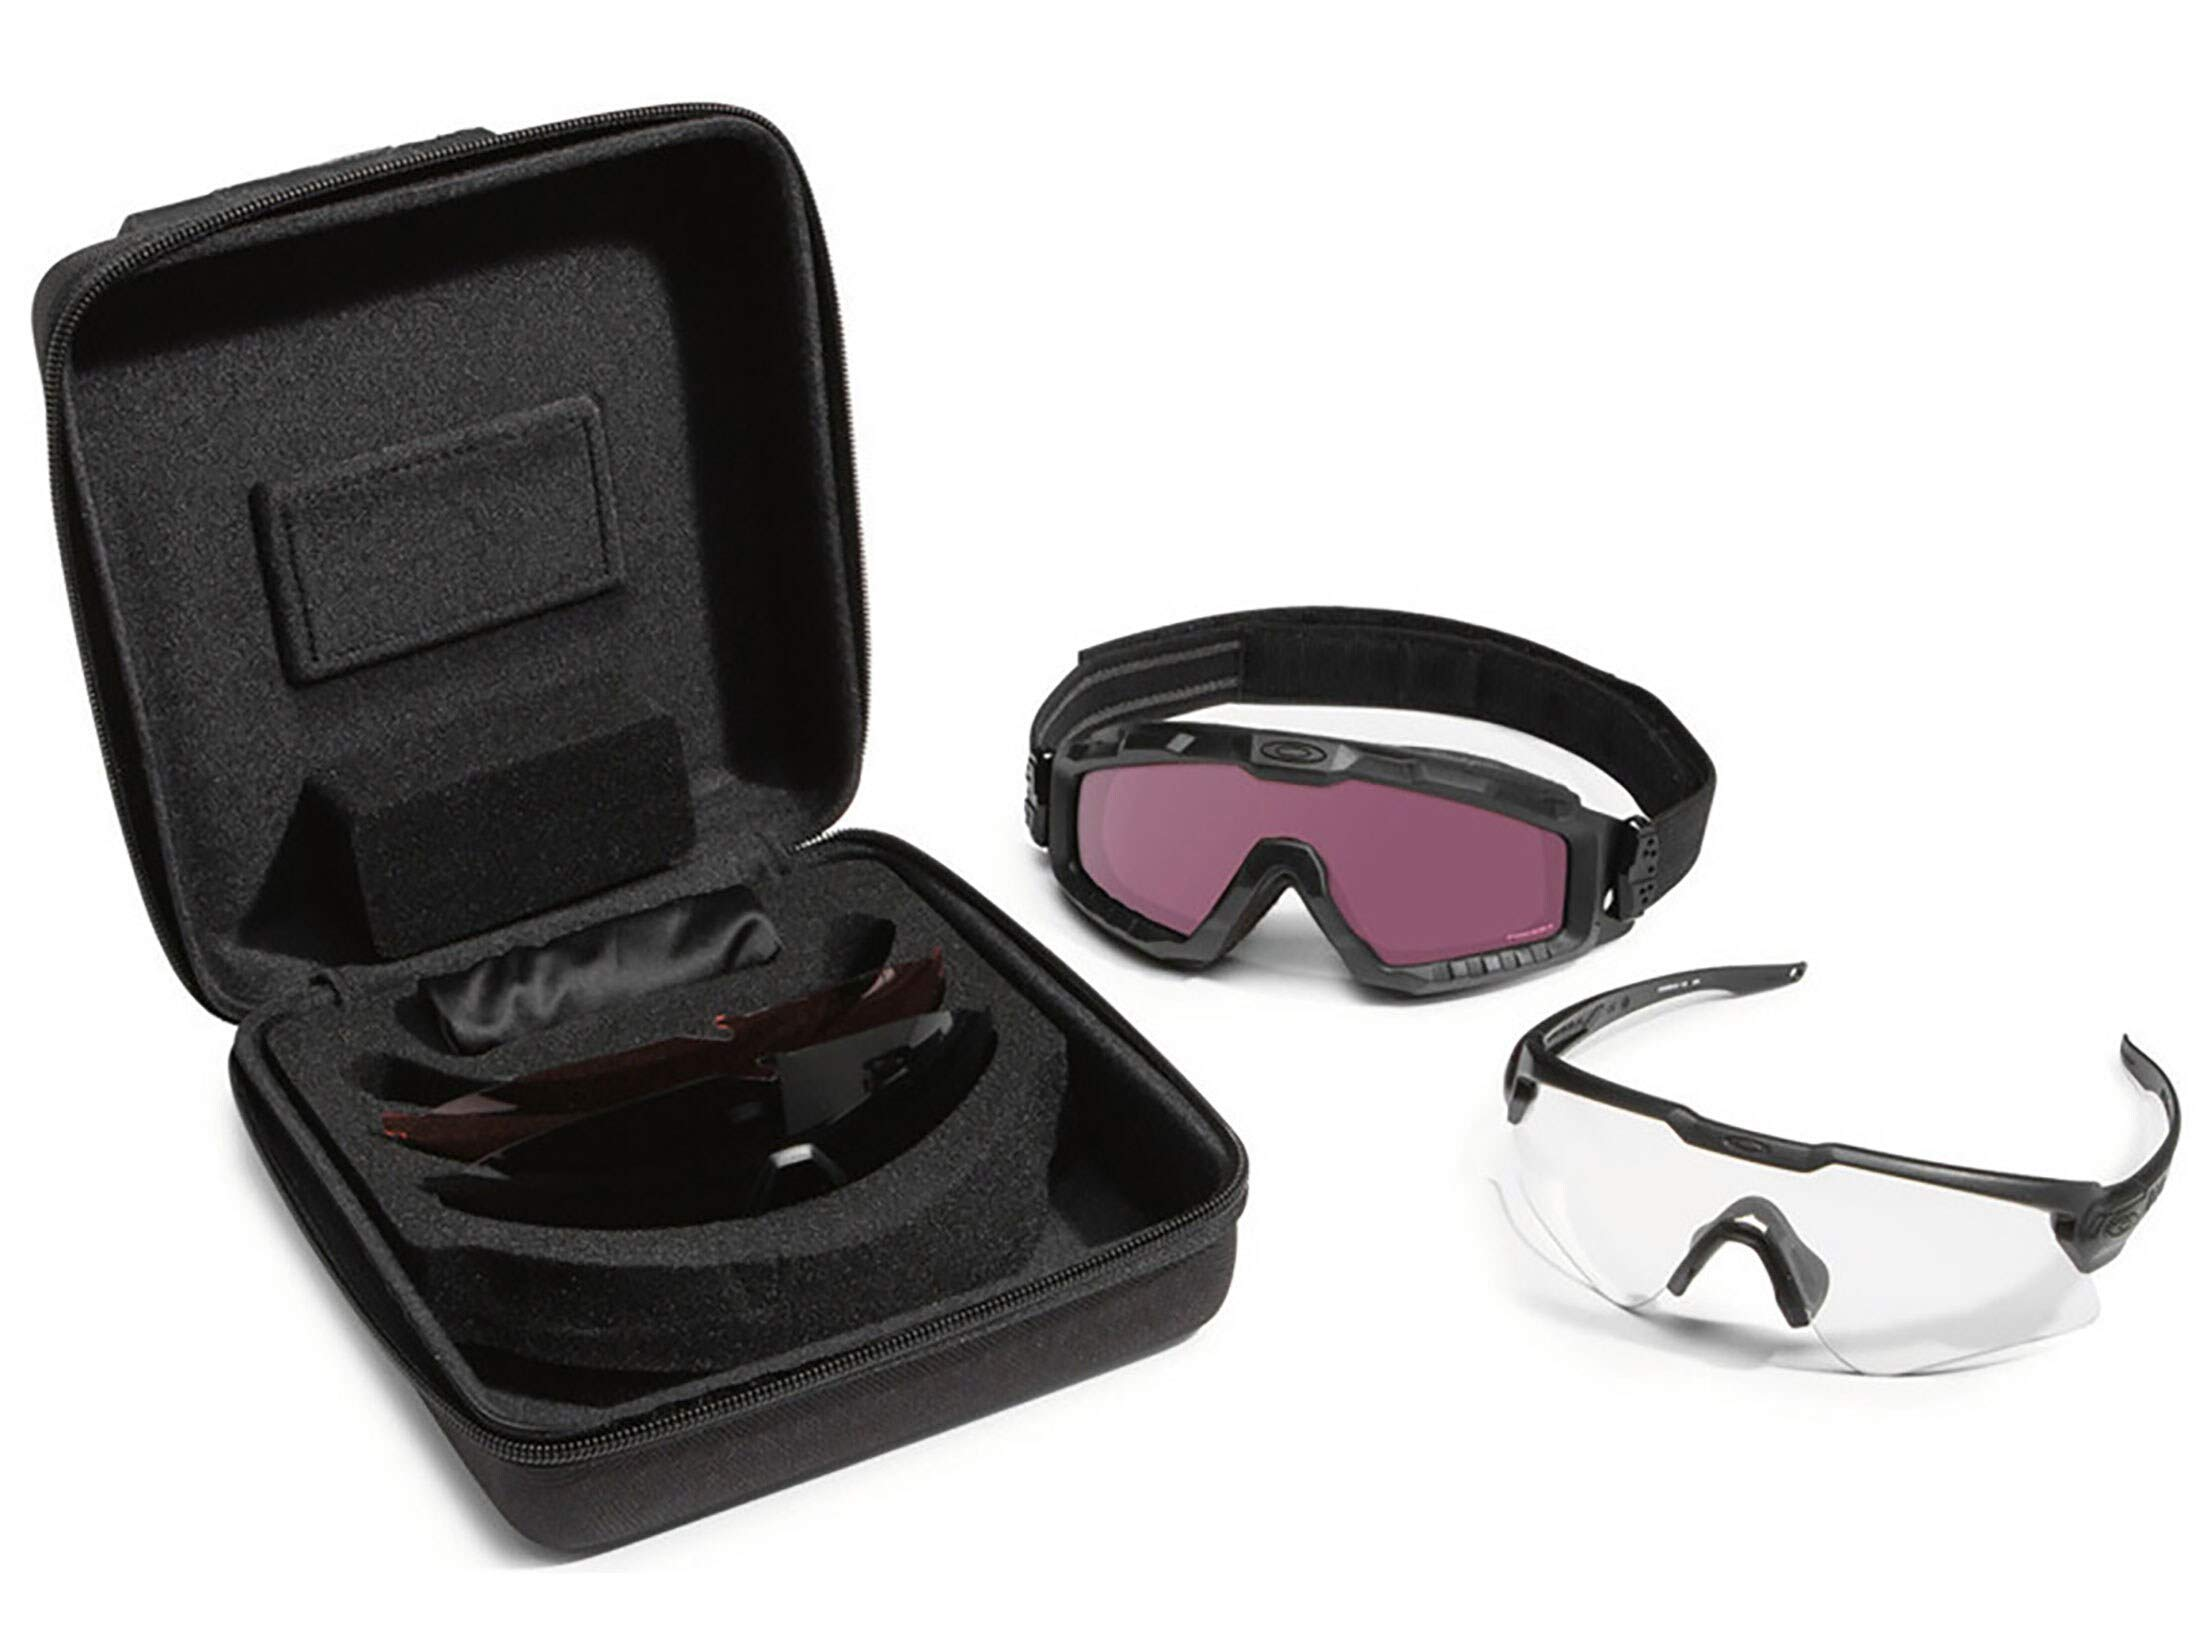 Buy Oakley Products Online In Bahrain Manama Riffa Muharraq And More